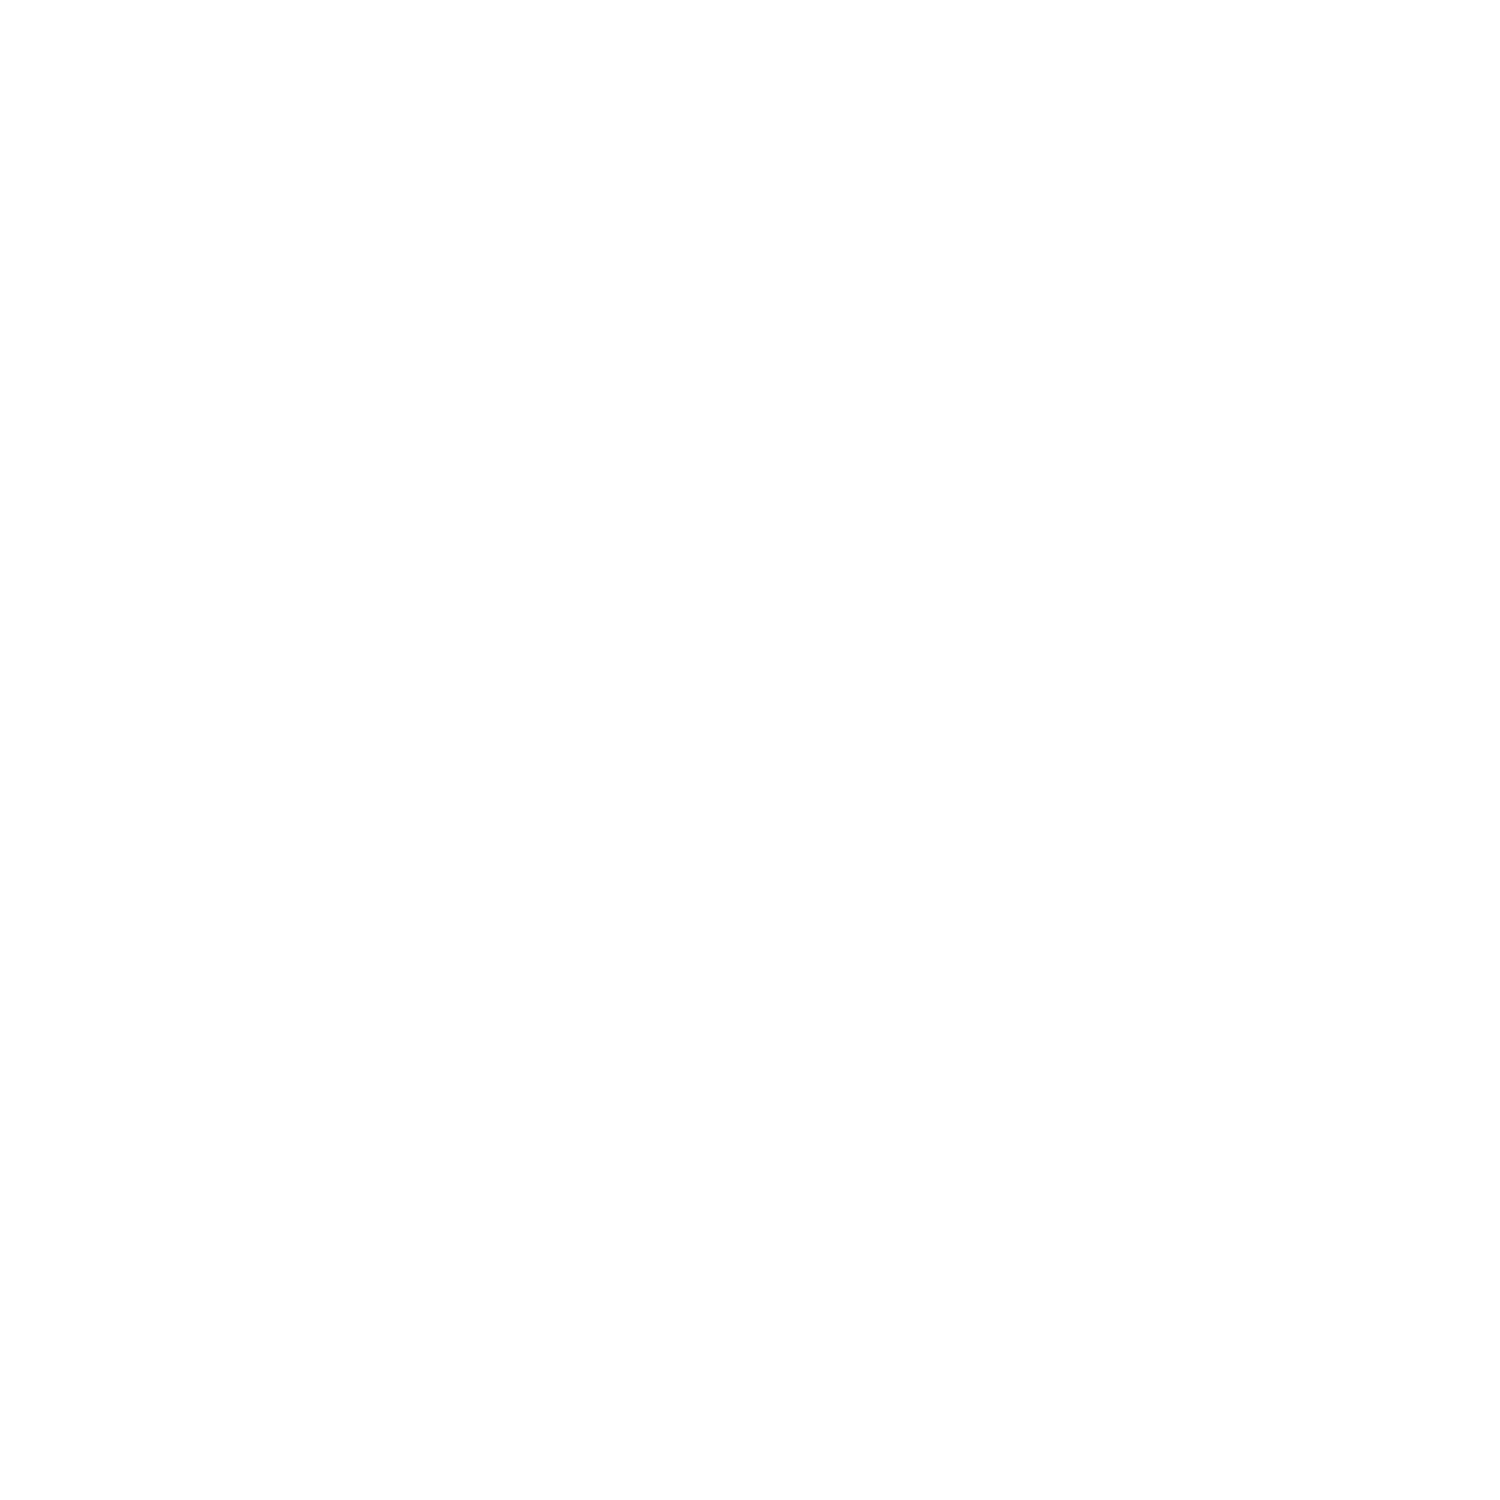 Tunnel Marathon